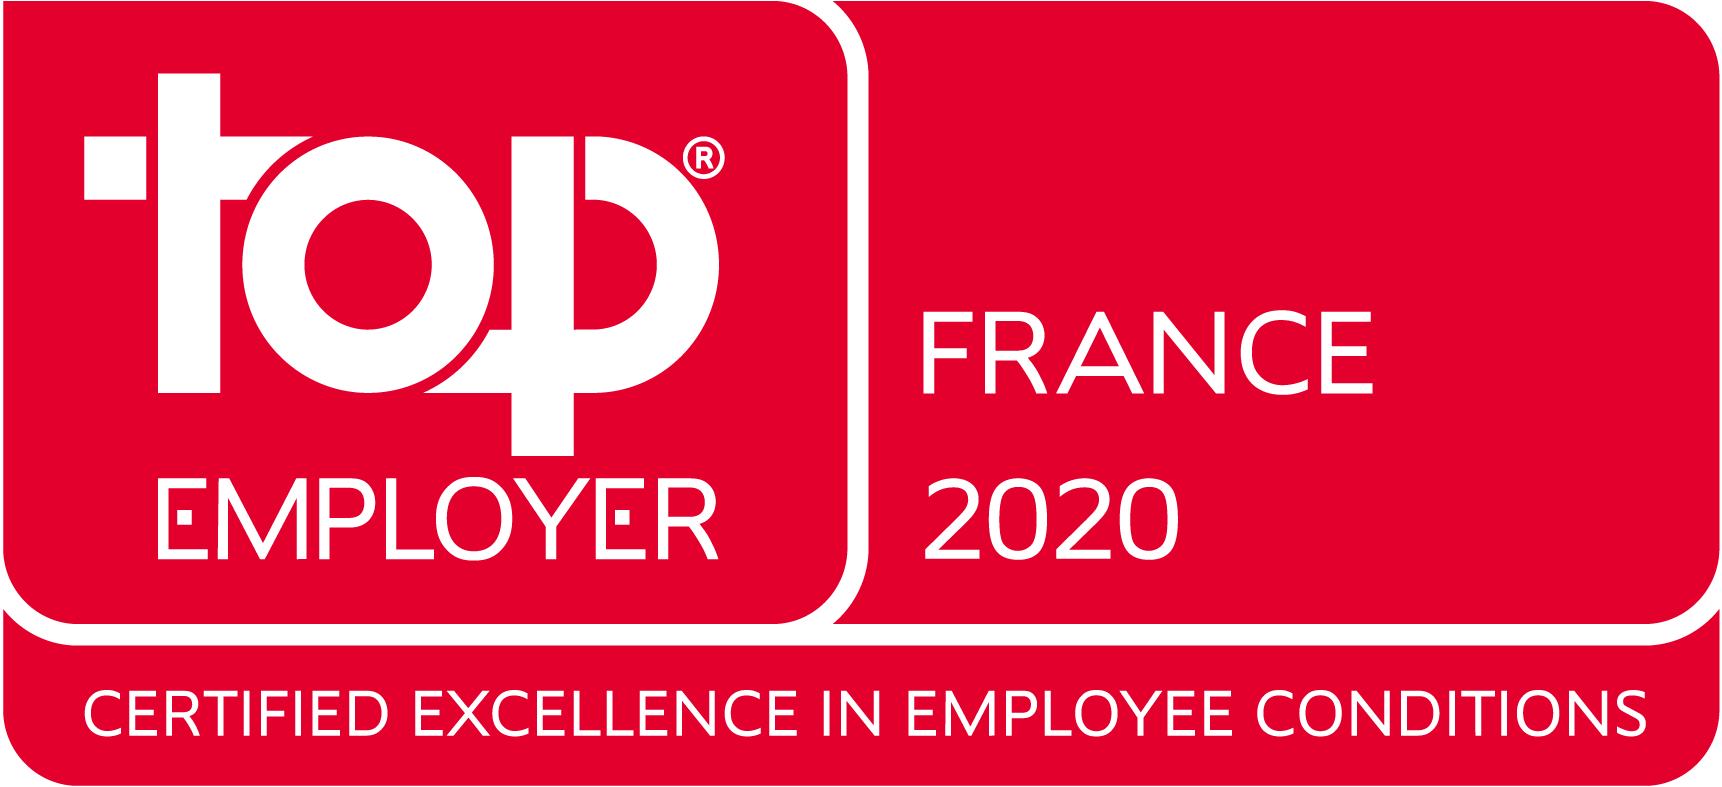 Top employer 2020 France